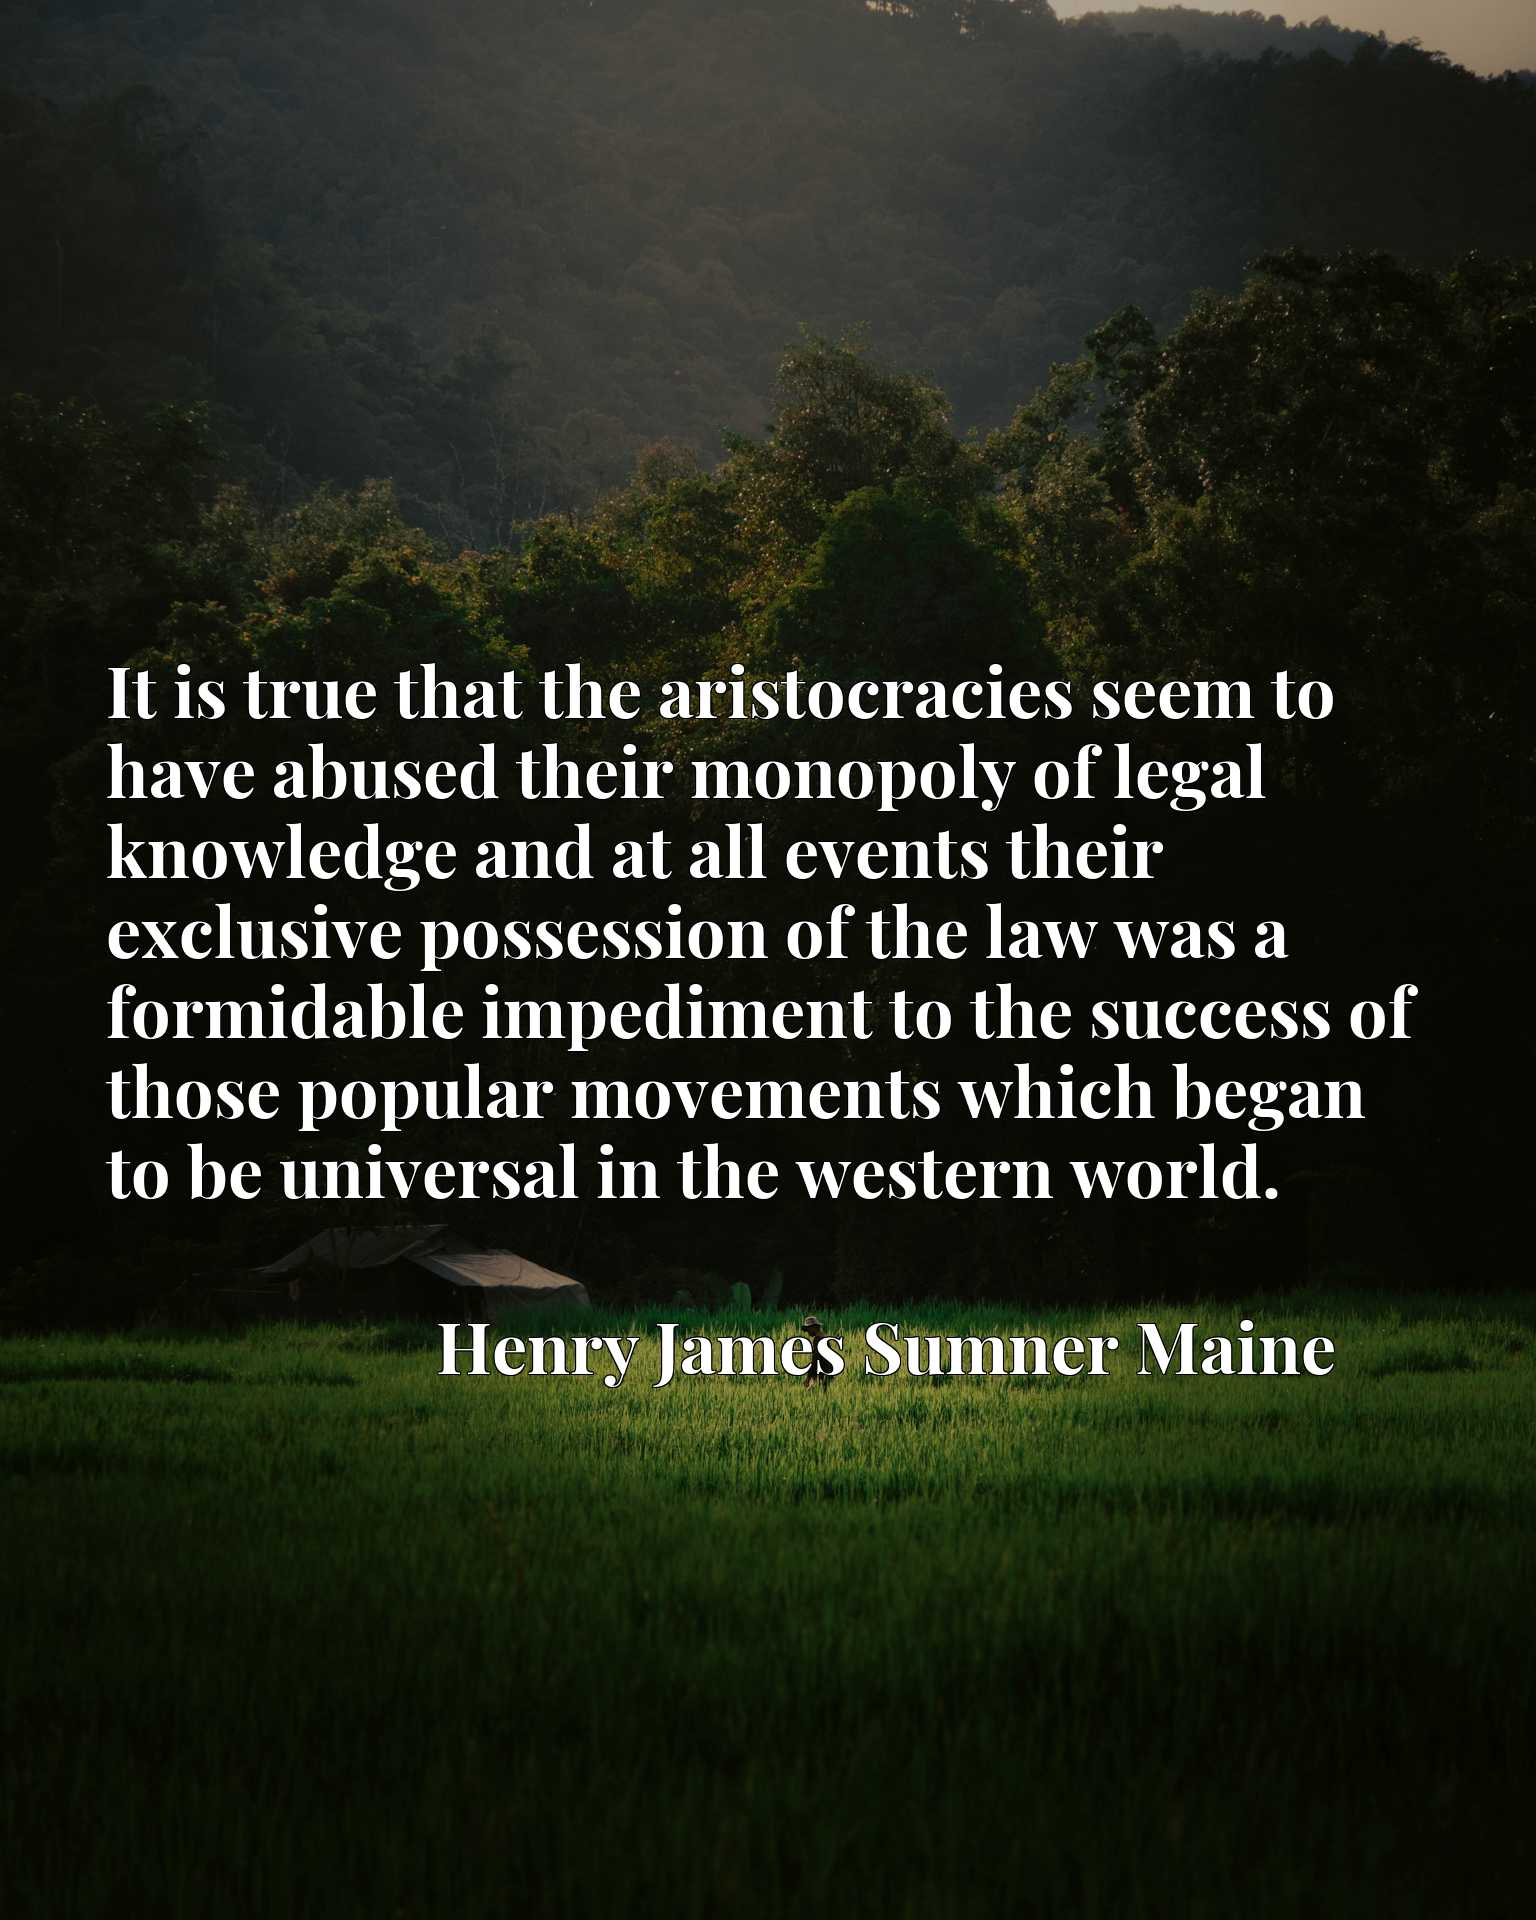 It is true that the aristocracies seem to have abused their monopoly of legal knowledge and at all events their exclusive possession of the law was a formidable impediment to the success of those popular movements which began to be universal in the western world.